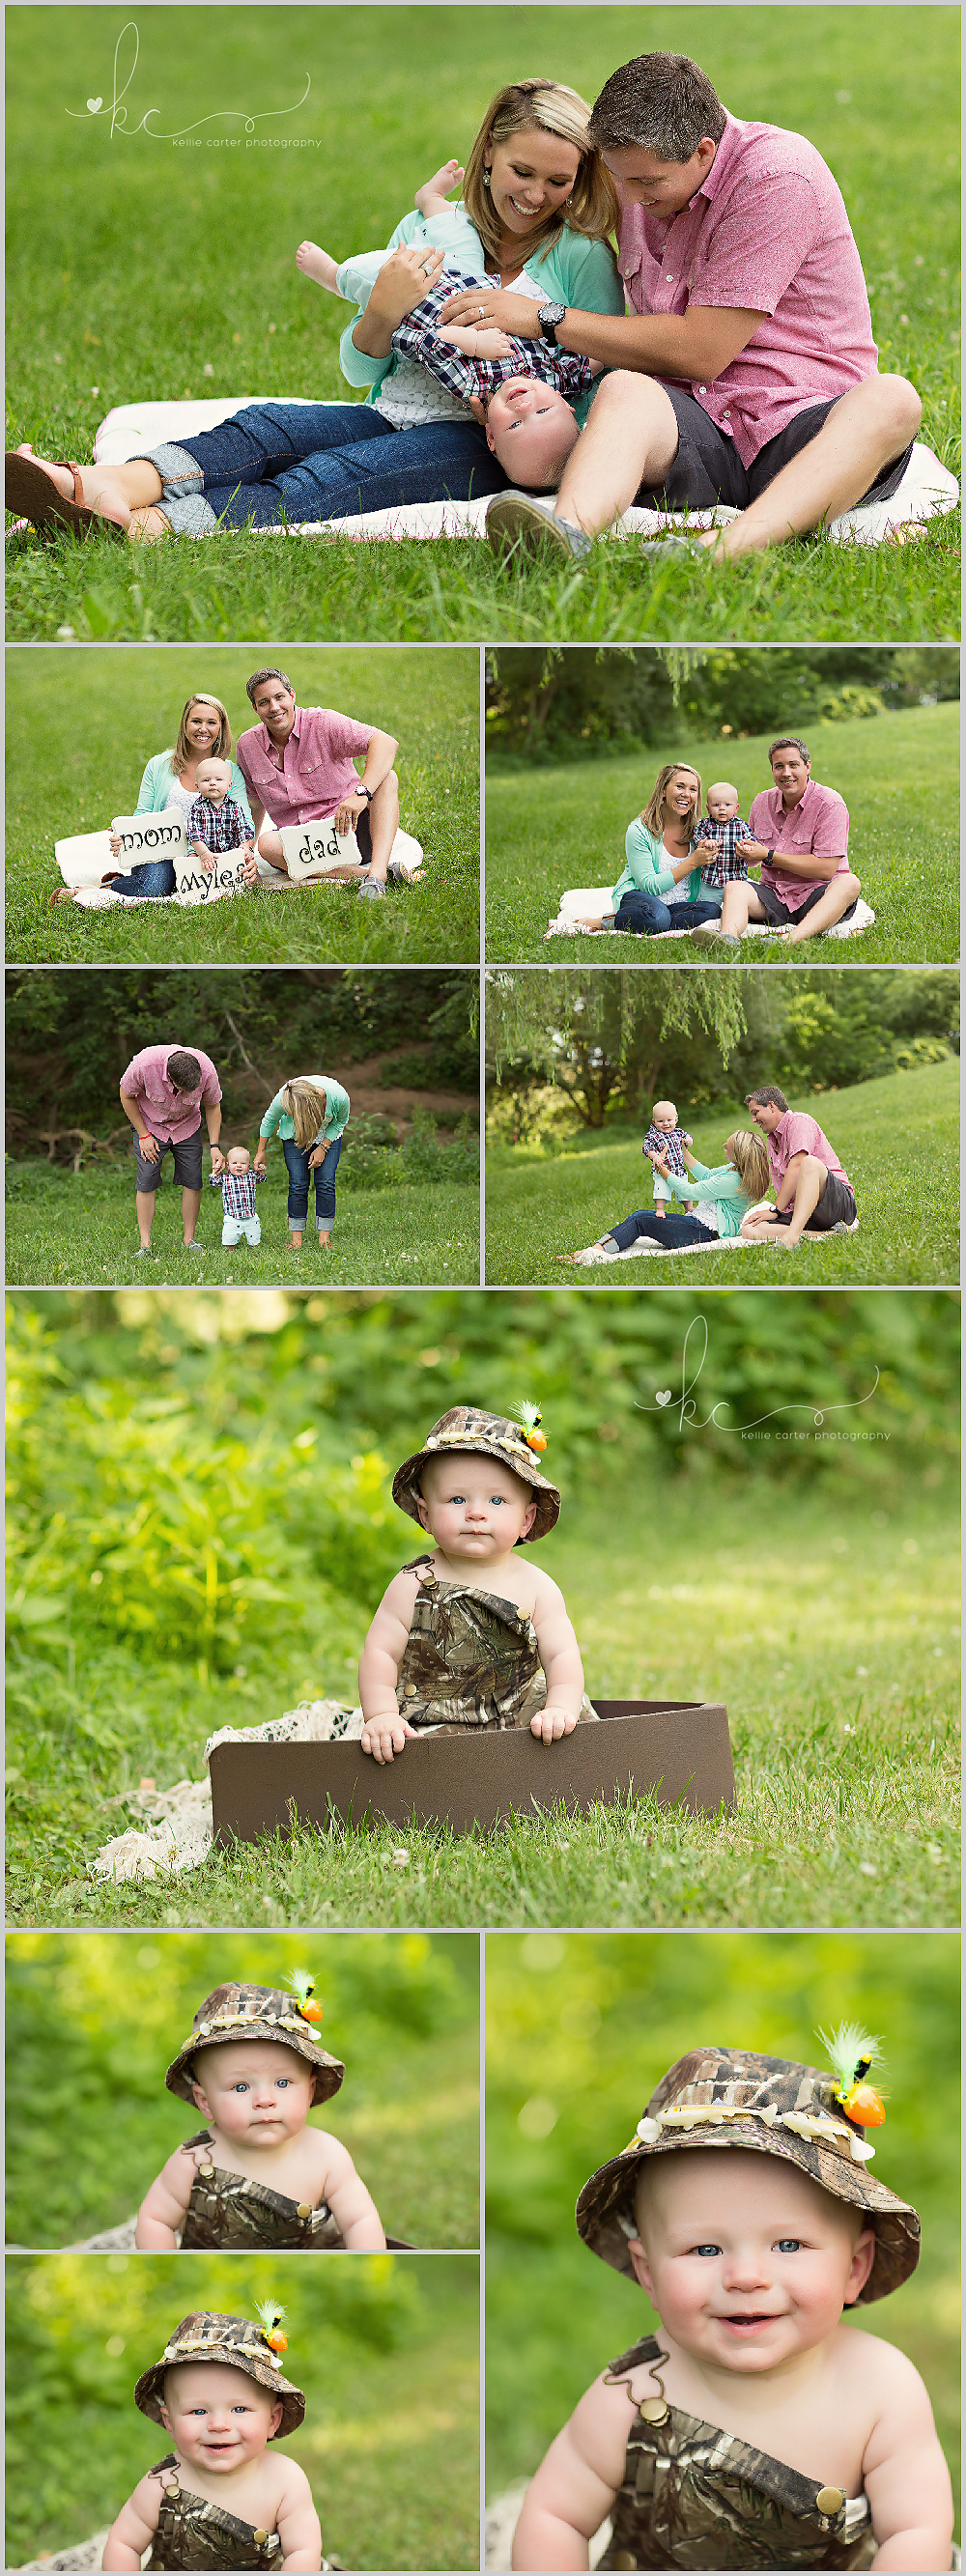 KellieCarterPhotography2 Myles 6 Month Old Milestone Session {Somerset, KY | Childrens Photographer}